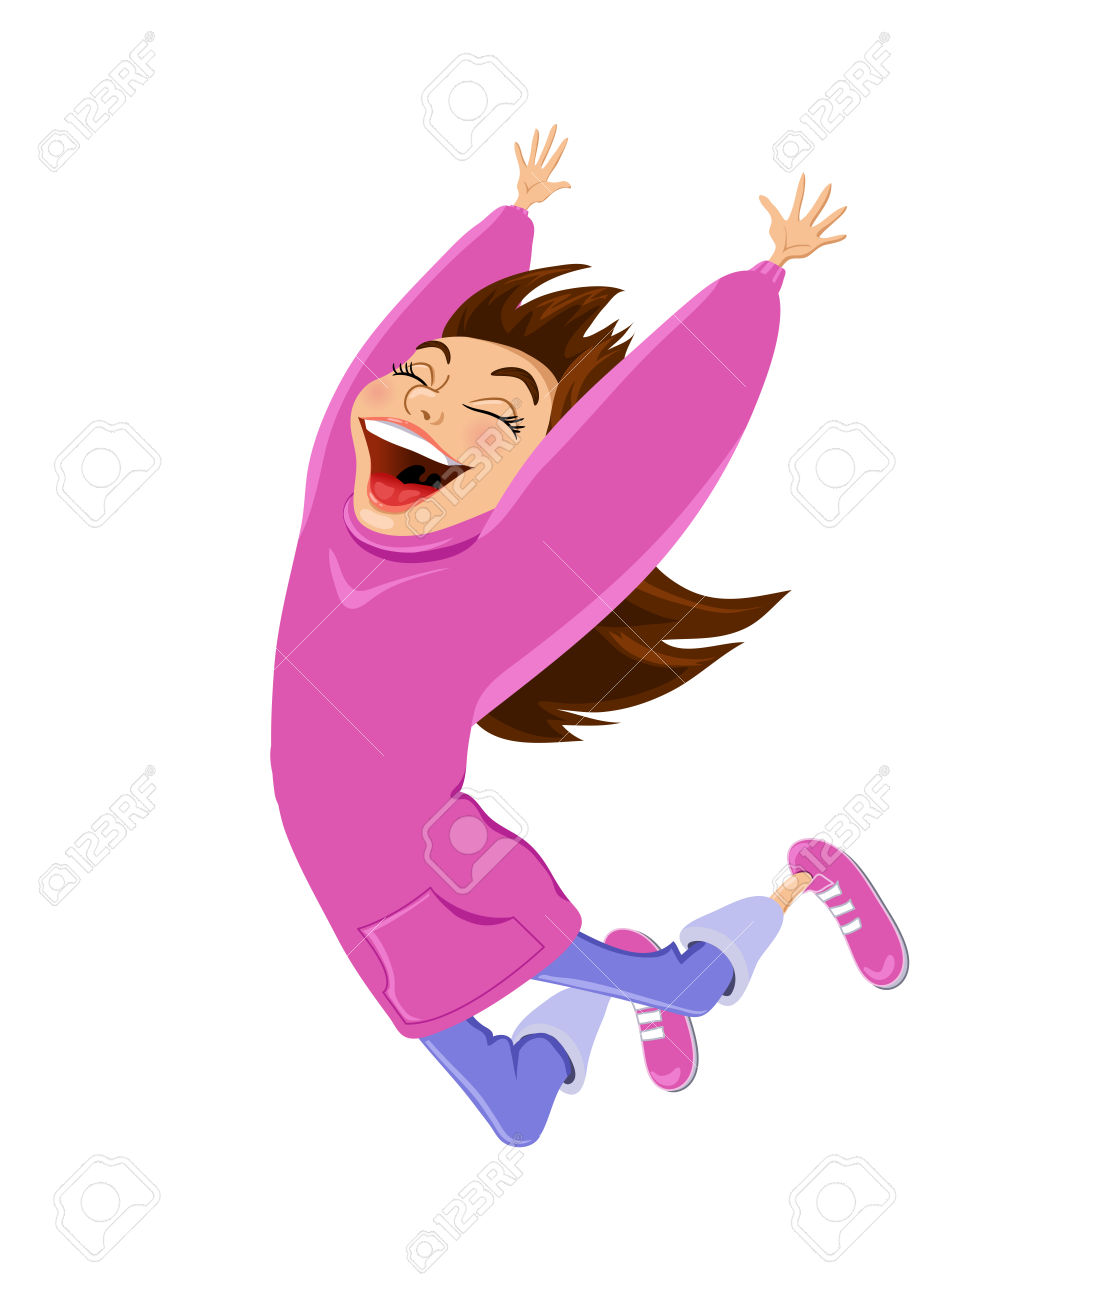 Girl Excited In Bed Cartoon